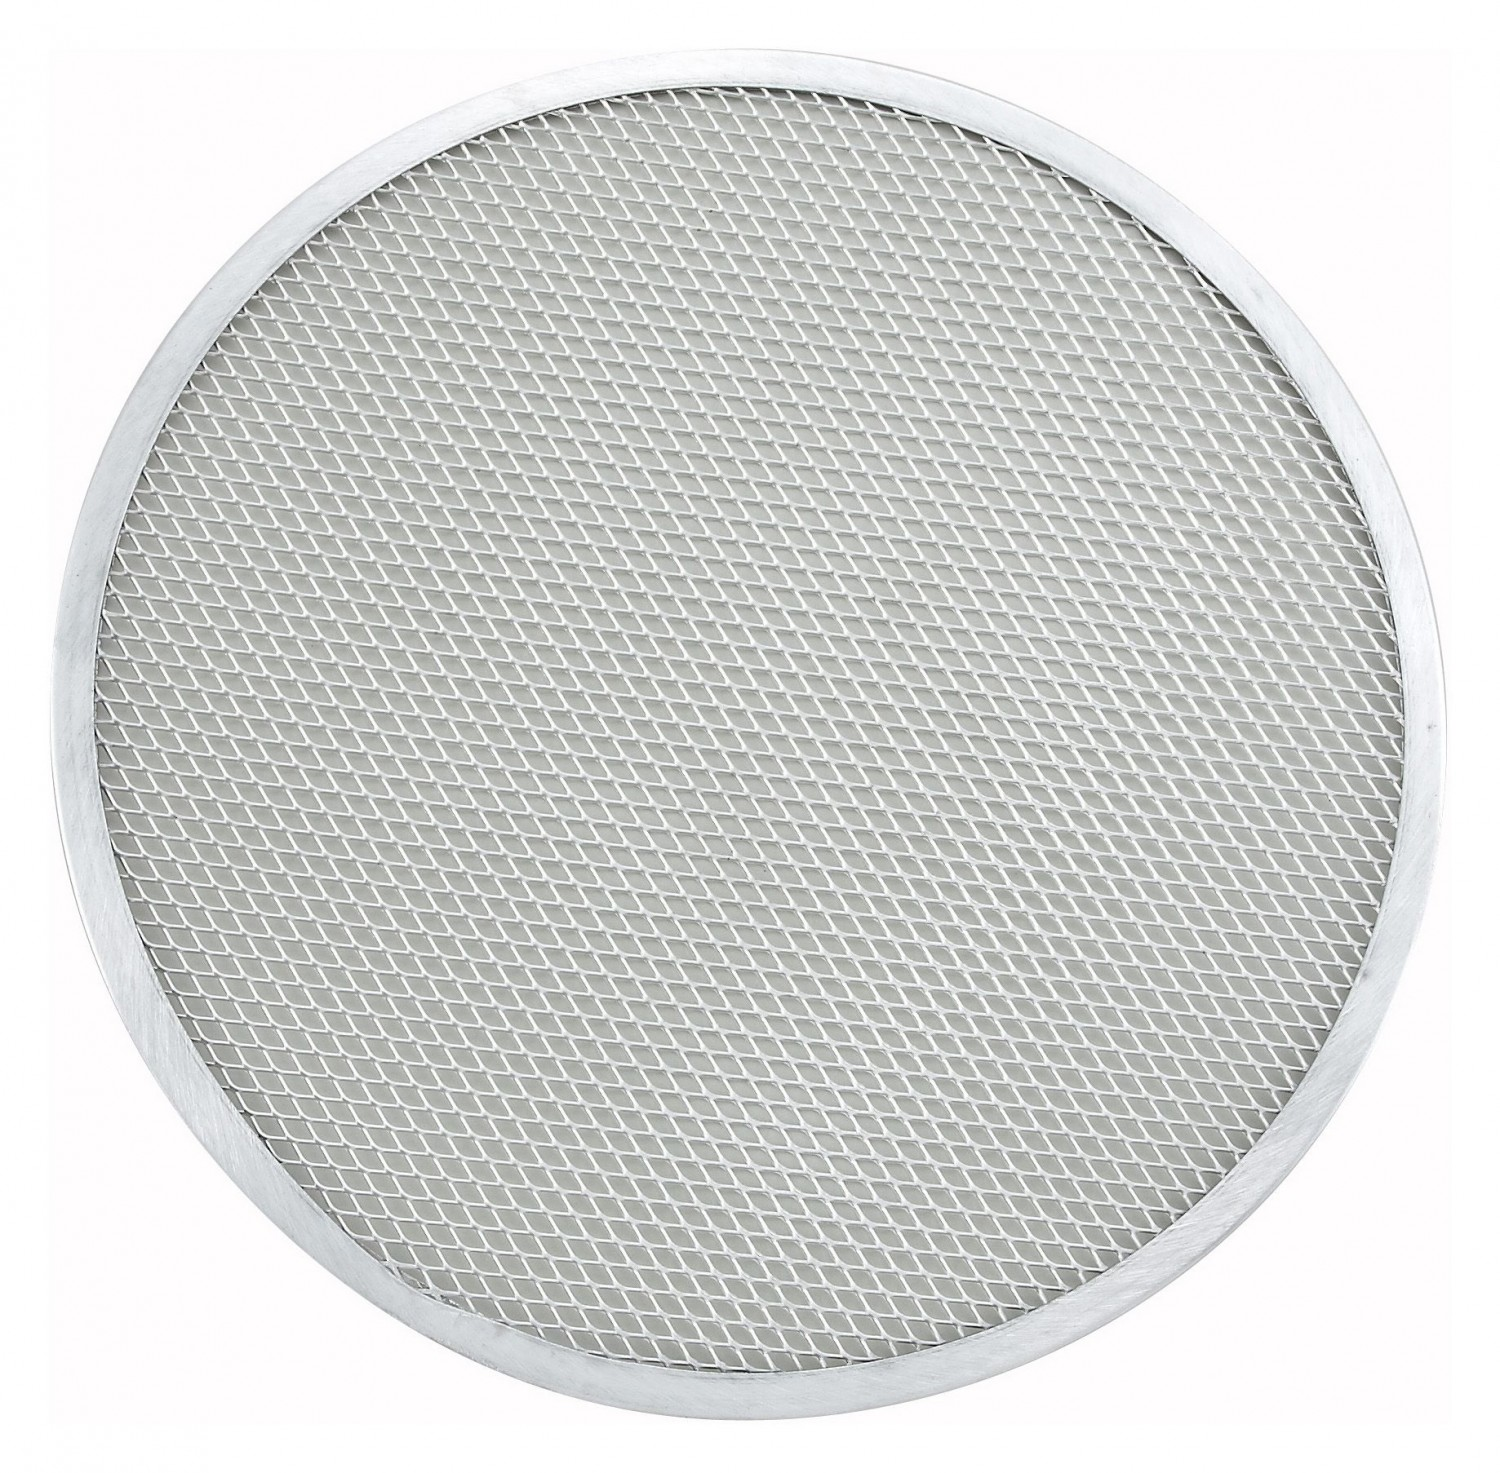 Winco APZS-15 Aluminum Seamless Pizza Screen 15""